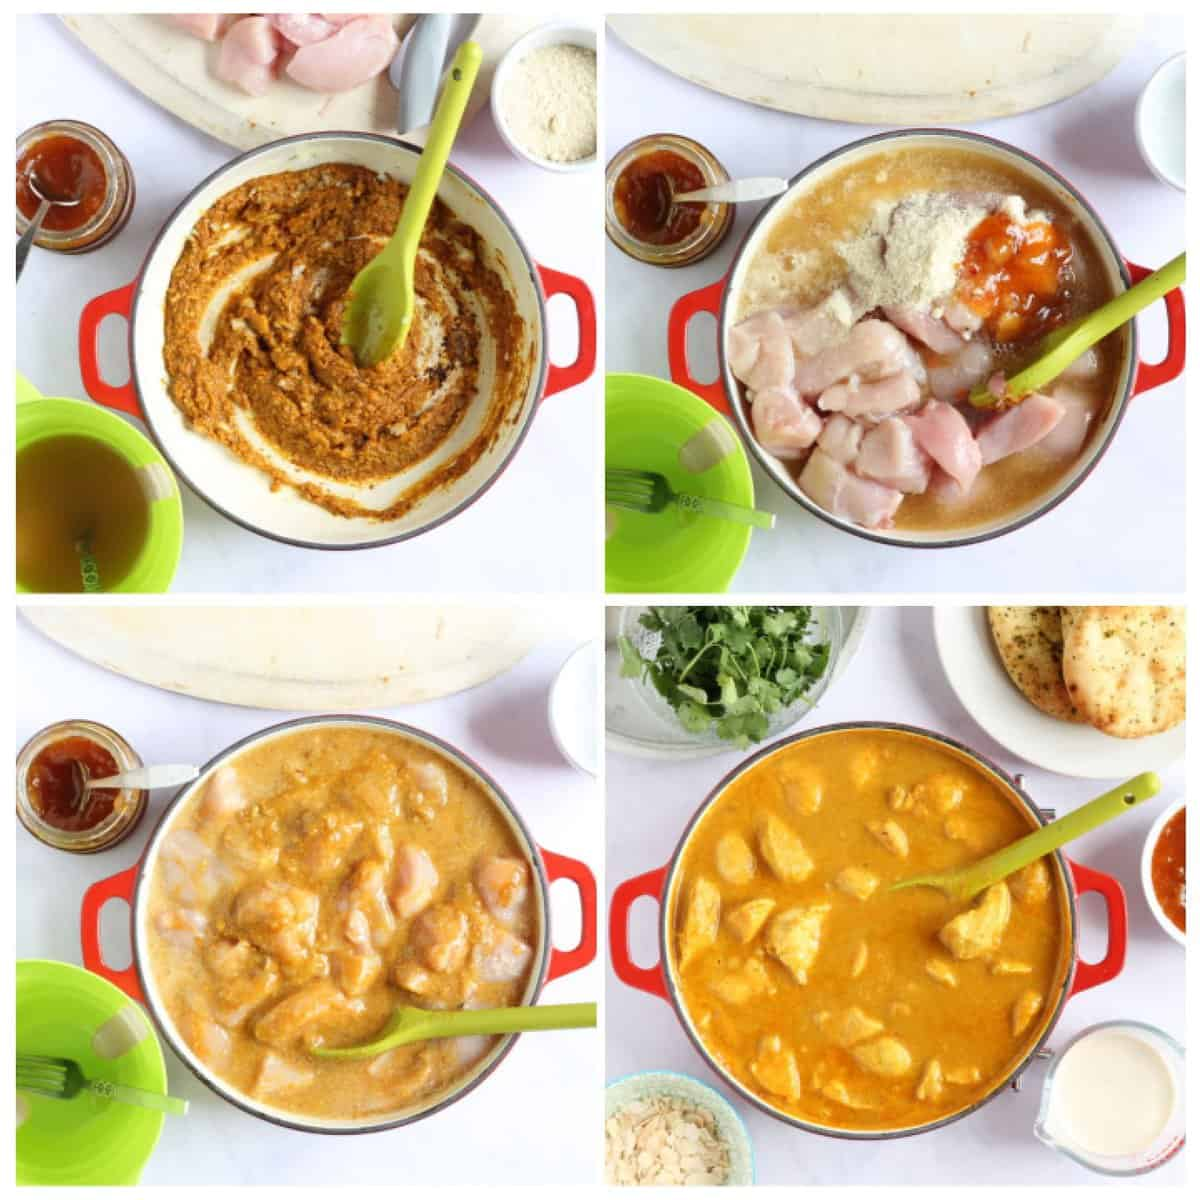 Step by step photo instructions for making the mild chicken curry.